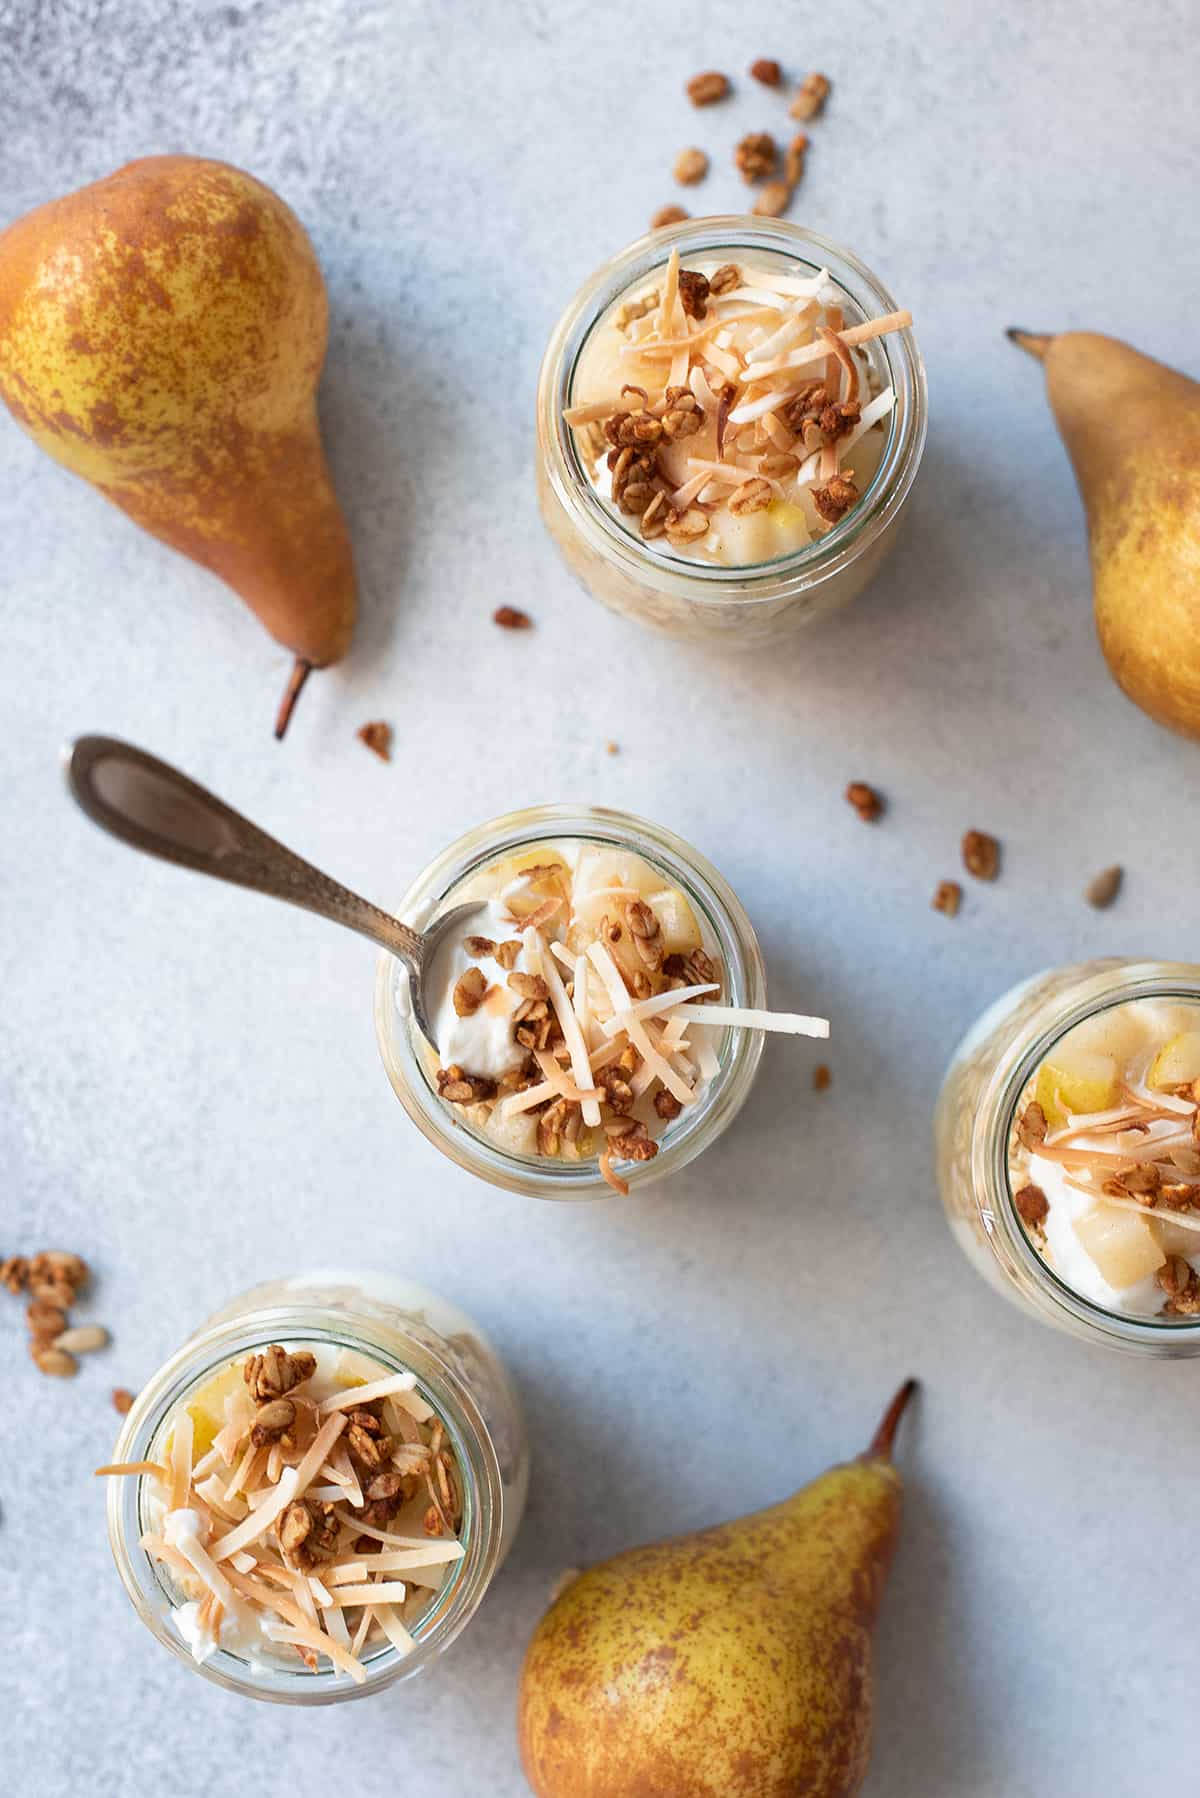 overnight oats pear parfaits with pears & spoons